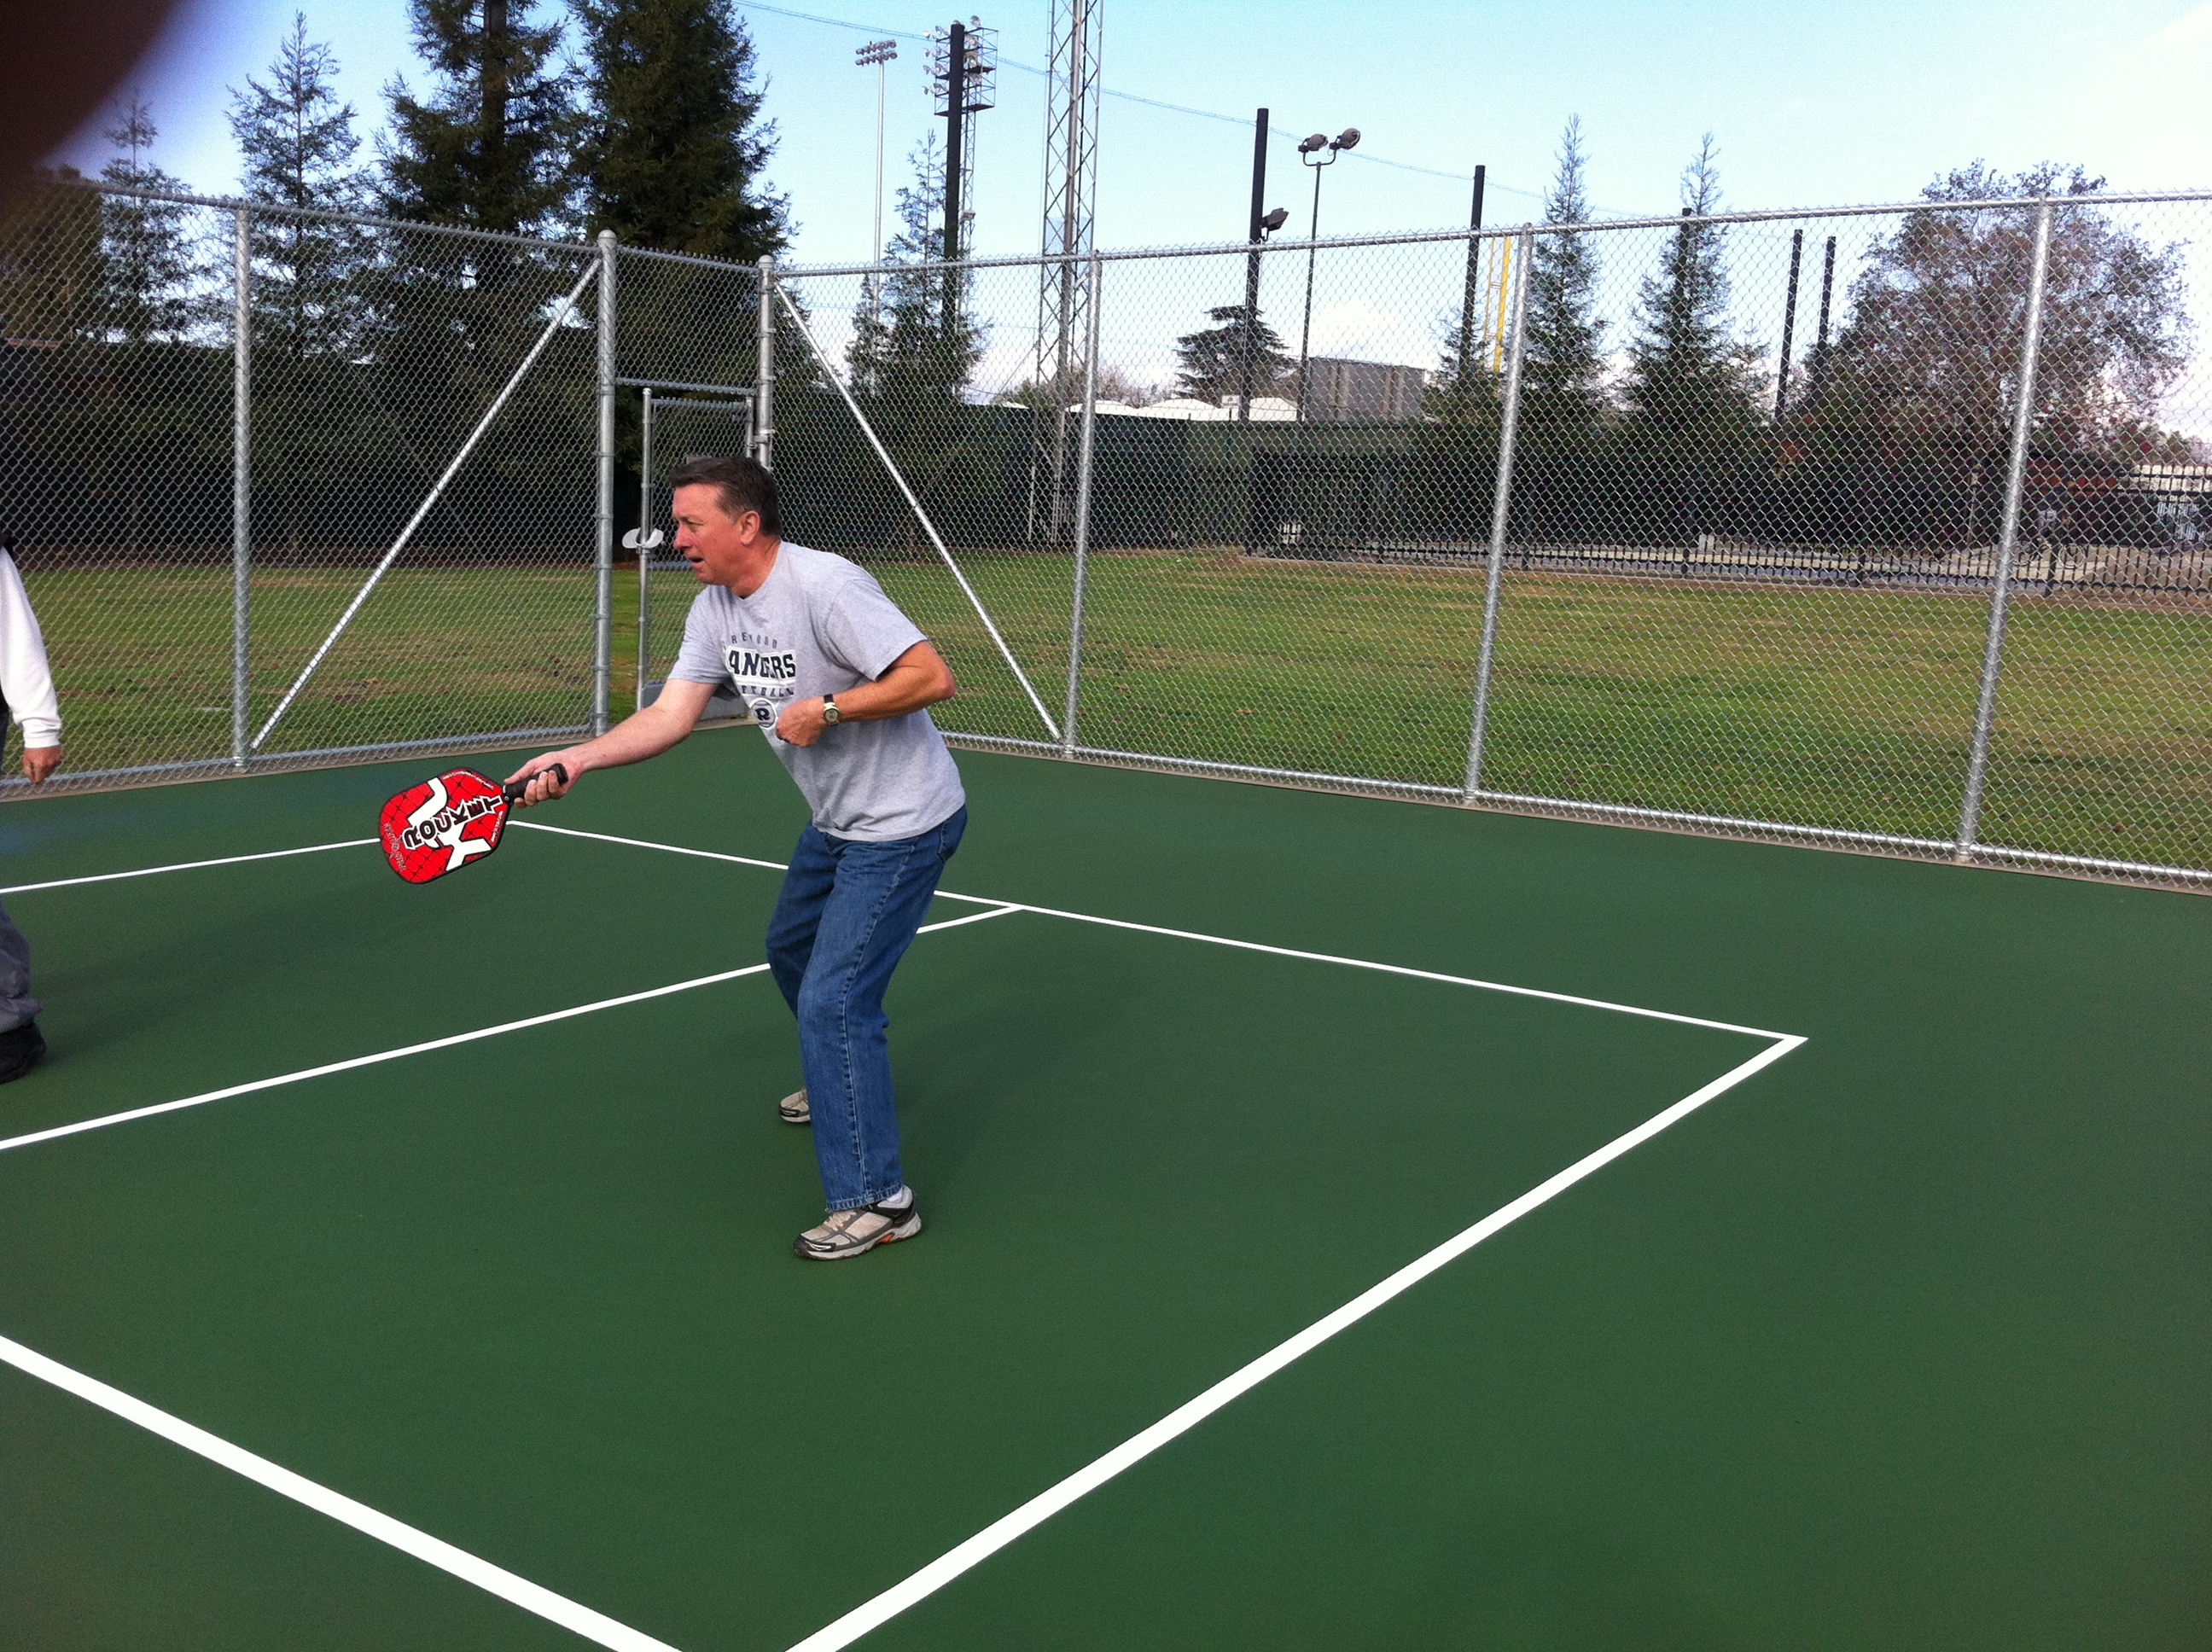 City Of Visalia Opens New Pickleball Courts Valley Voice